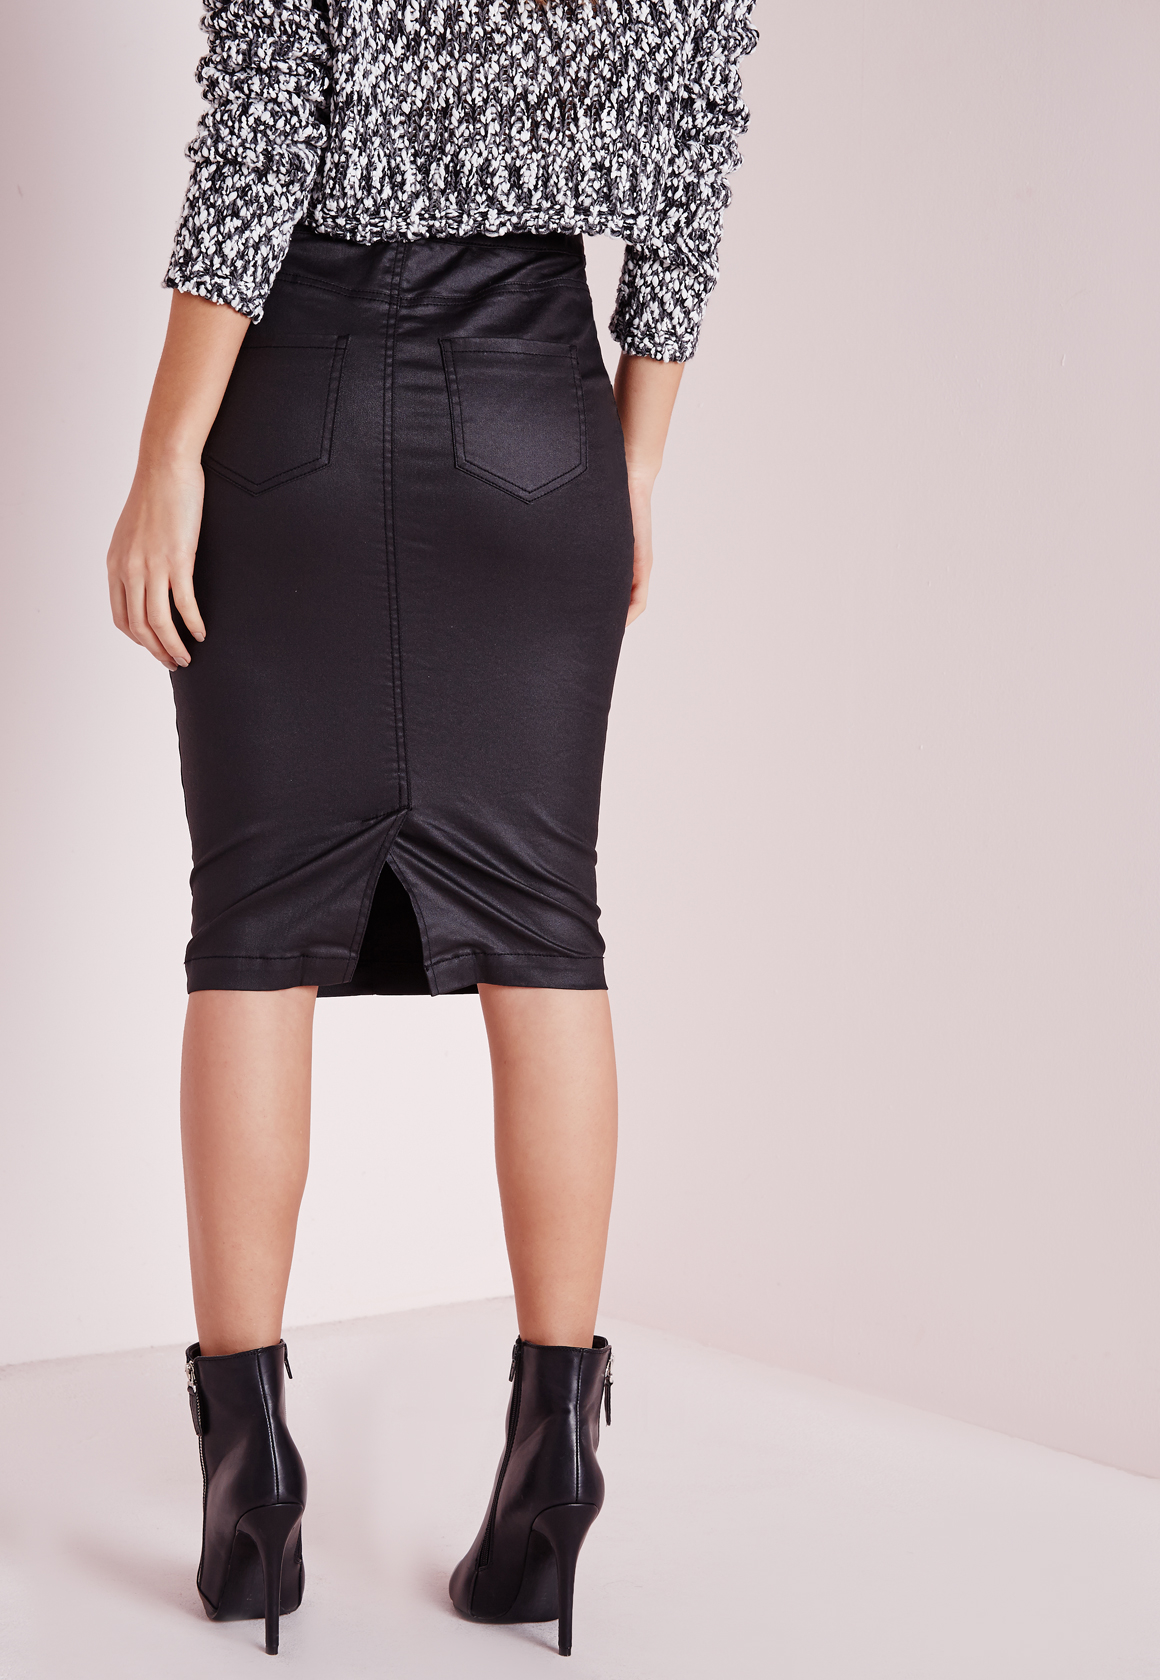 Missguided Sinner High Waisted Denim Skirt Black Coated in Black ...